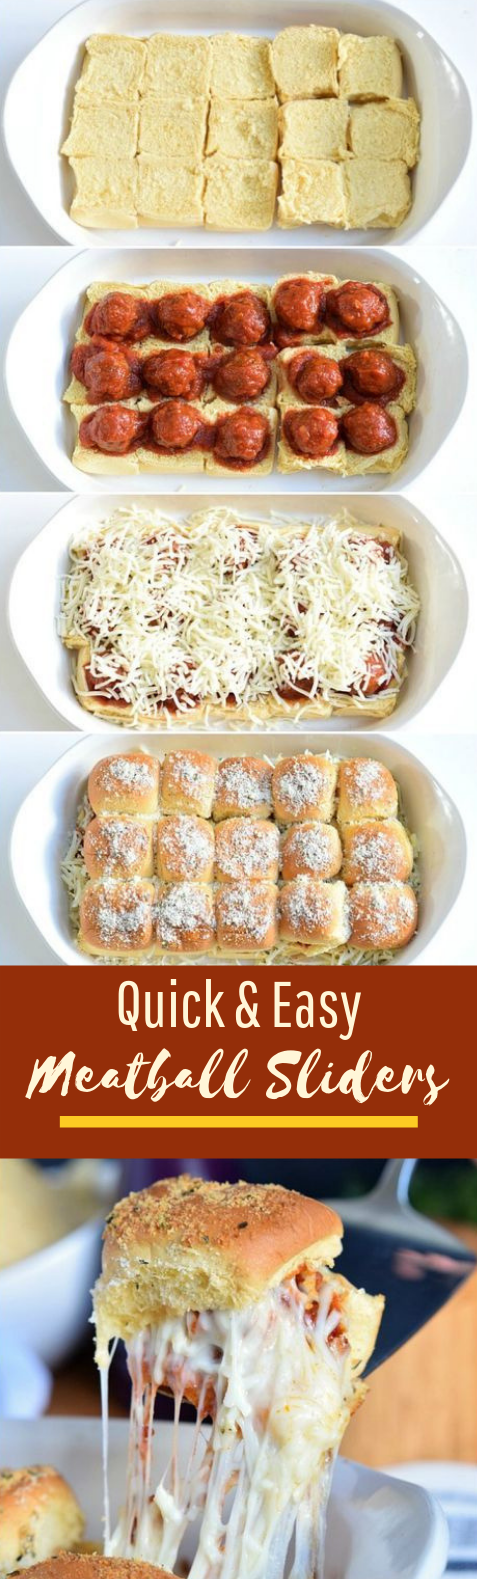 Easy Meatball Sliders #dinner #appetizer